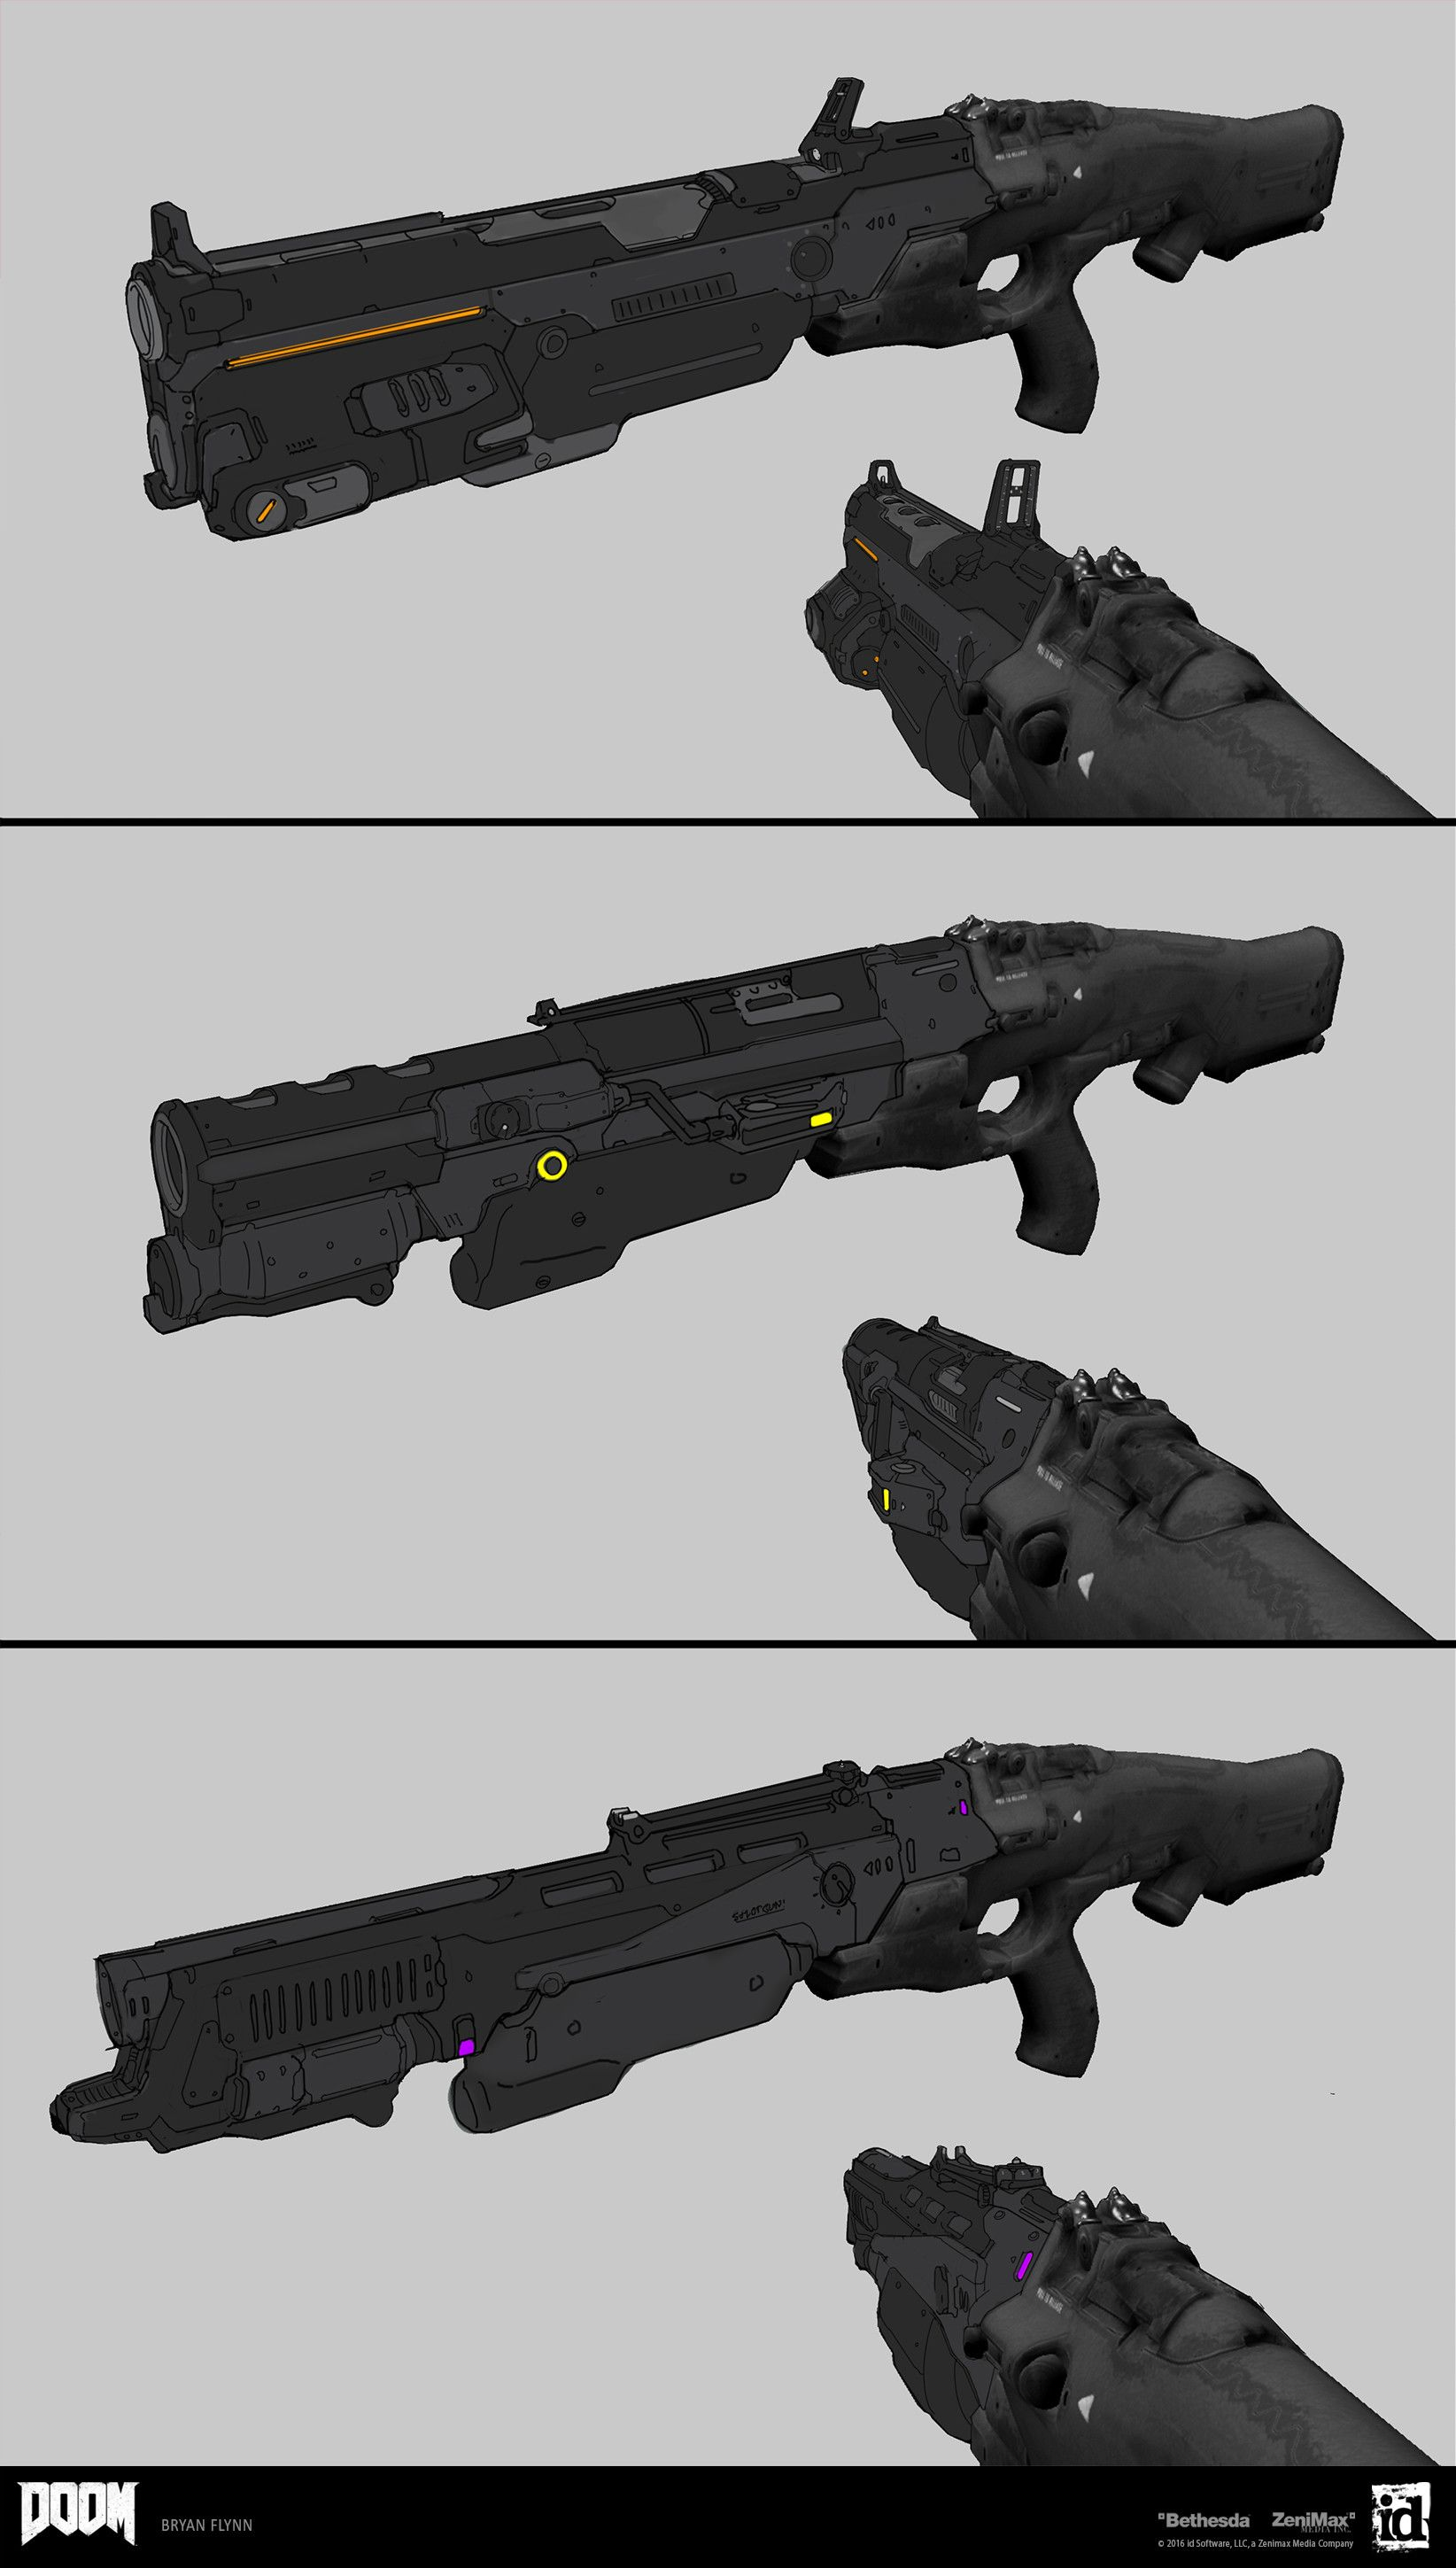 ArtStation - Doom Combat Shotgun Mods, Bryan Flynn | Weapons